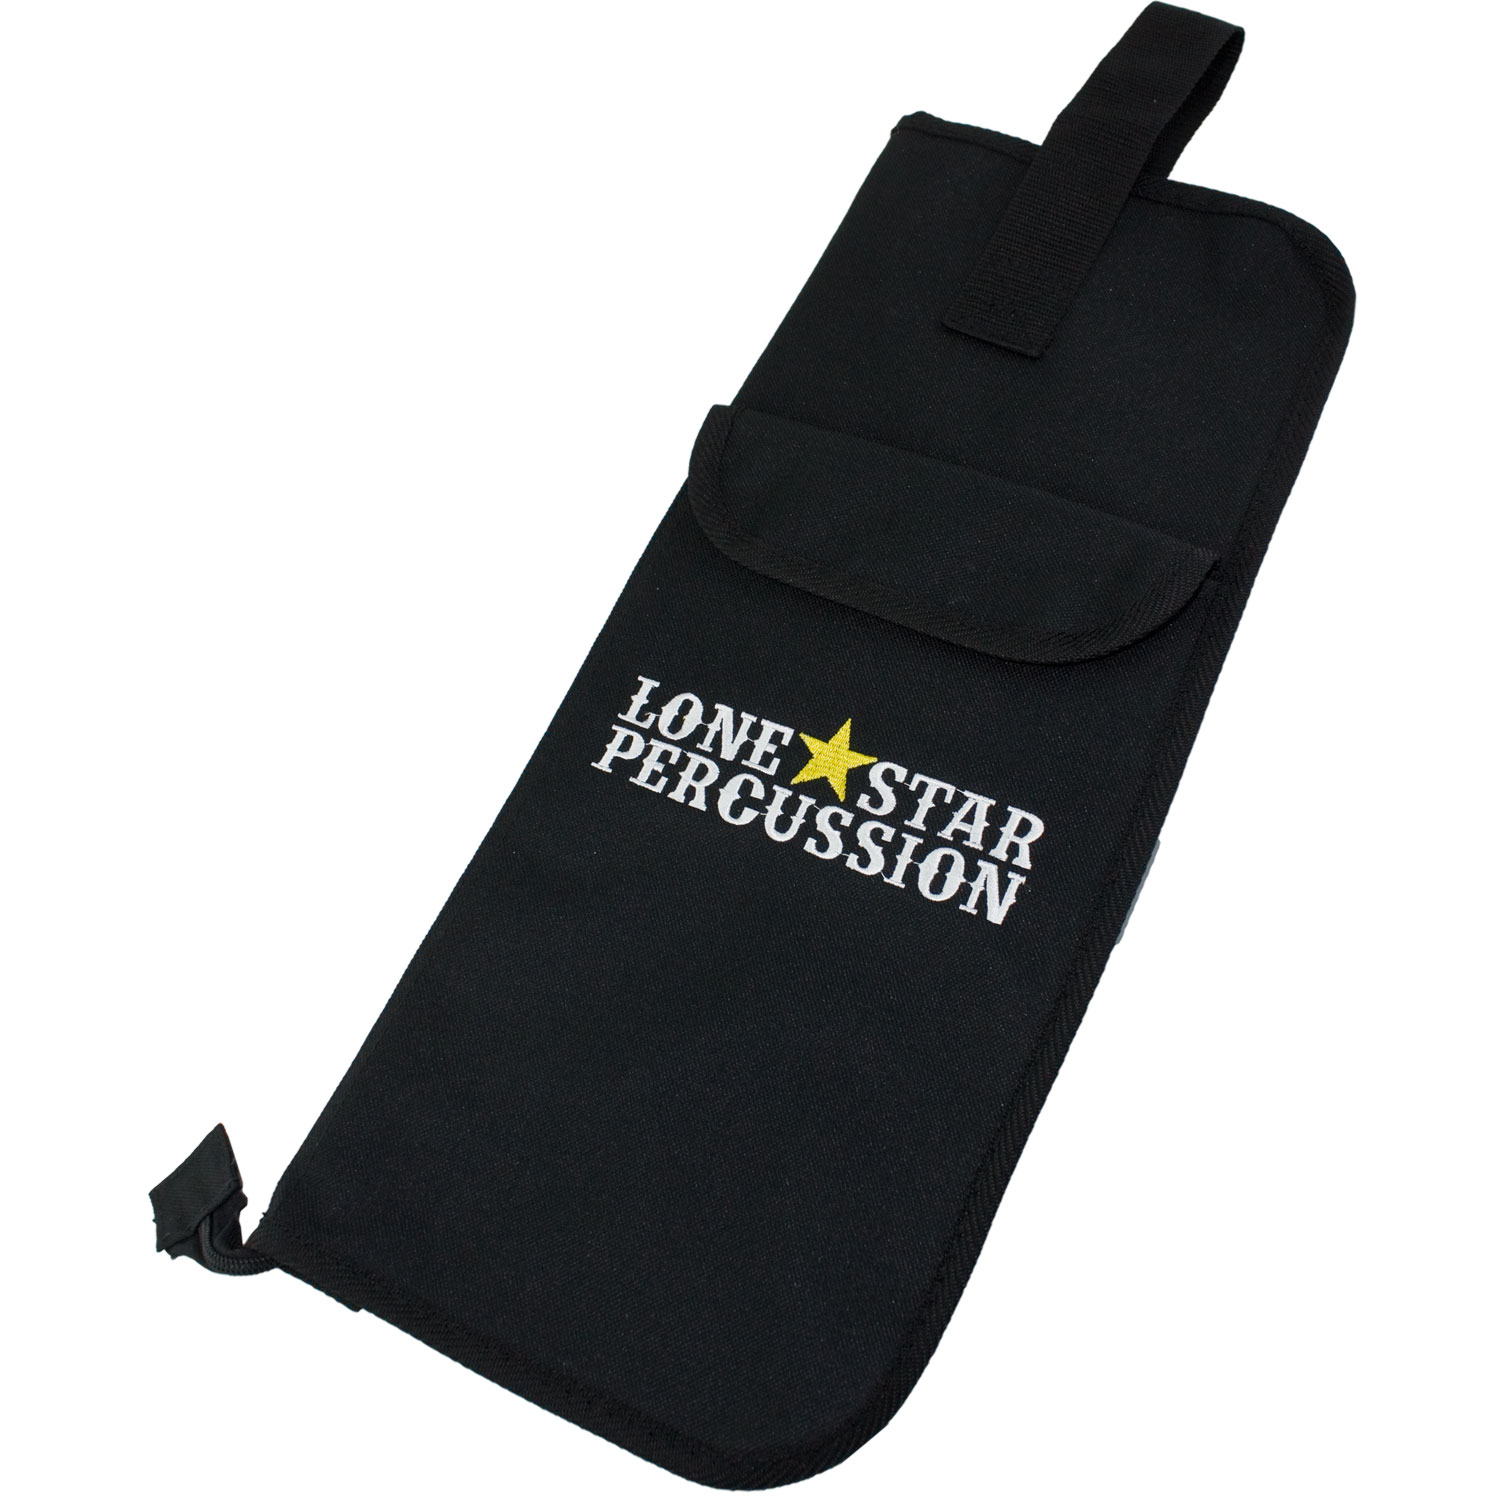 Lone Star Percussion Basic Stick Bag